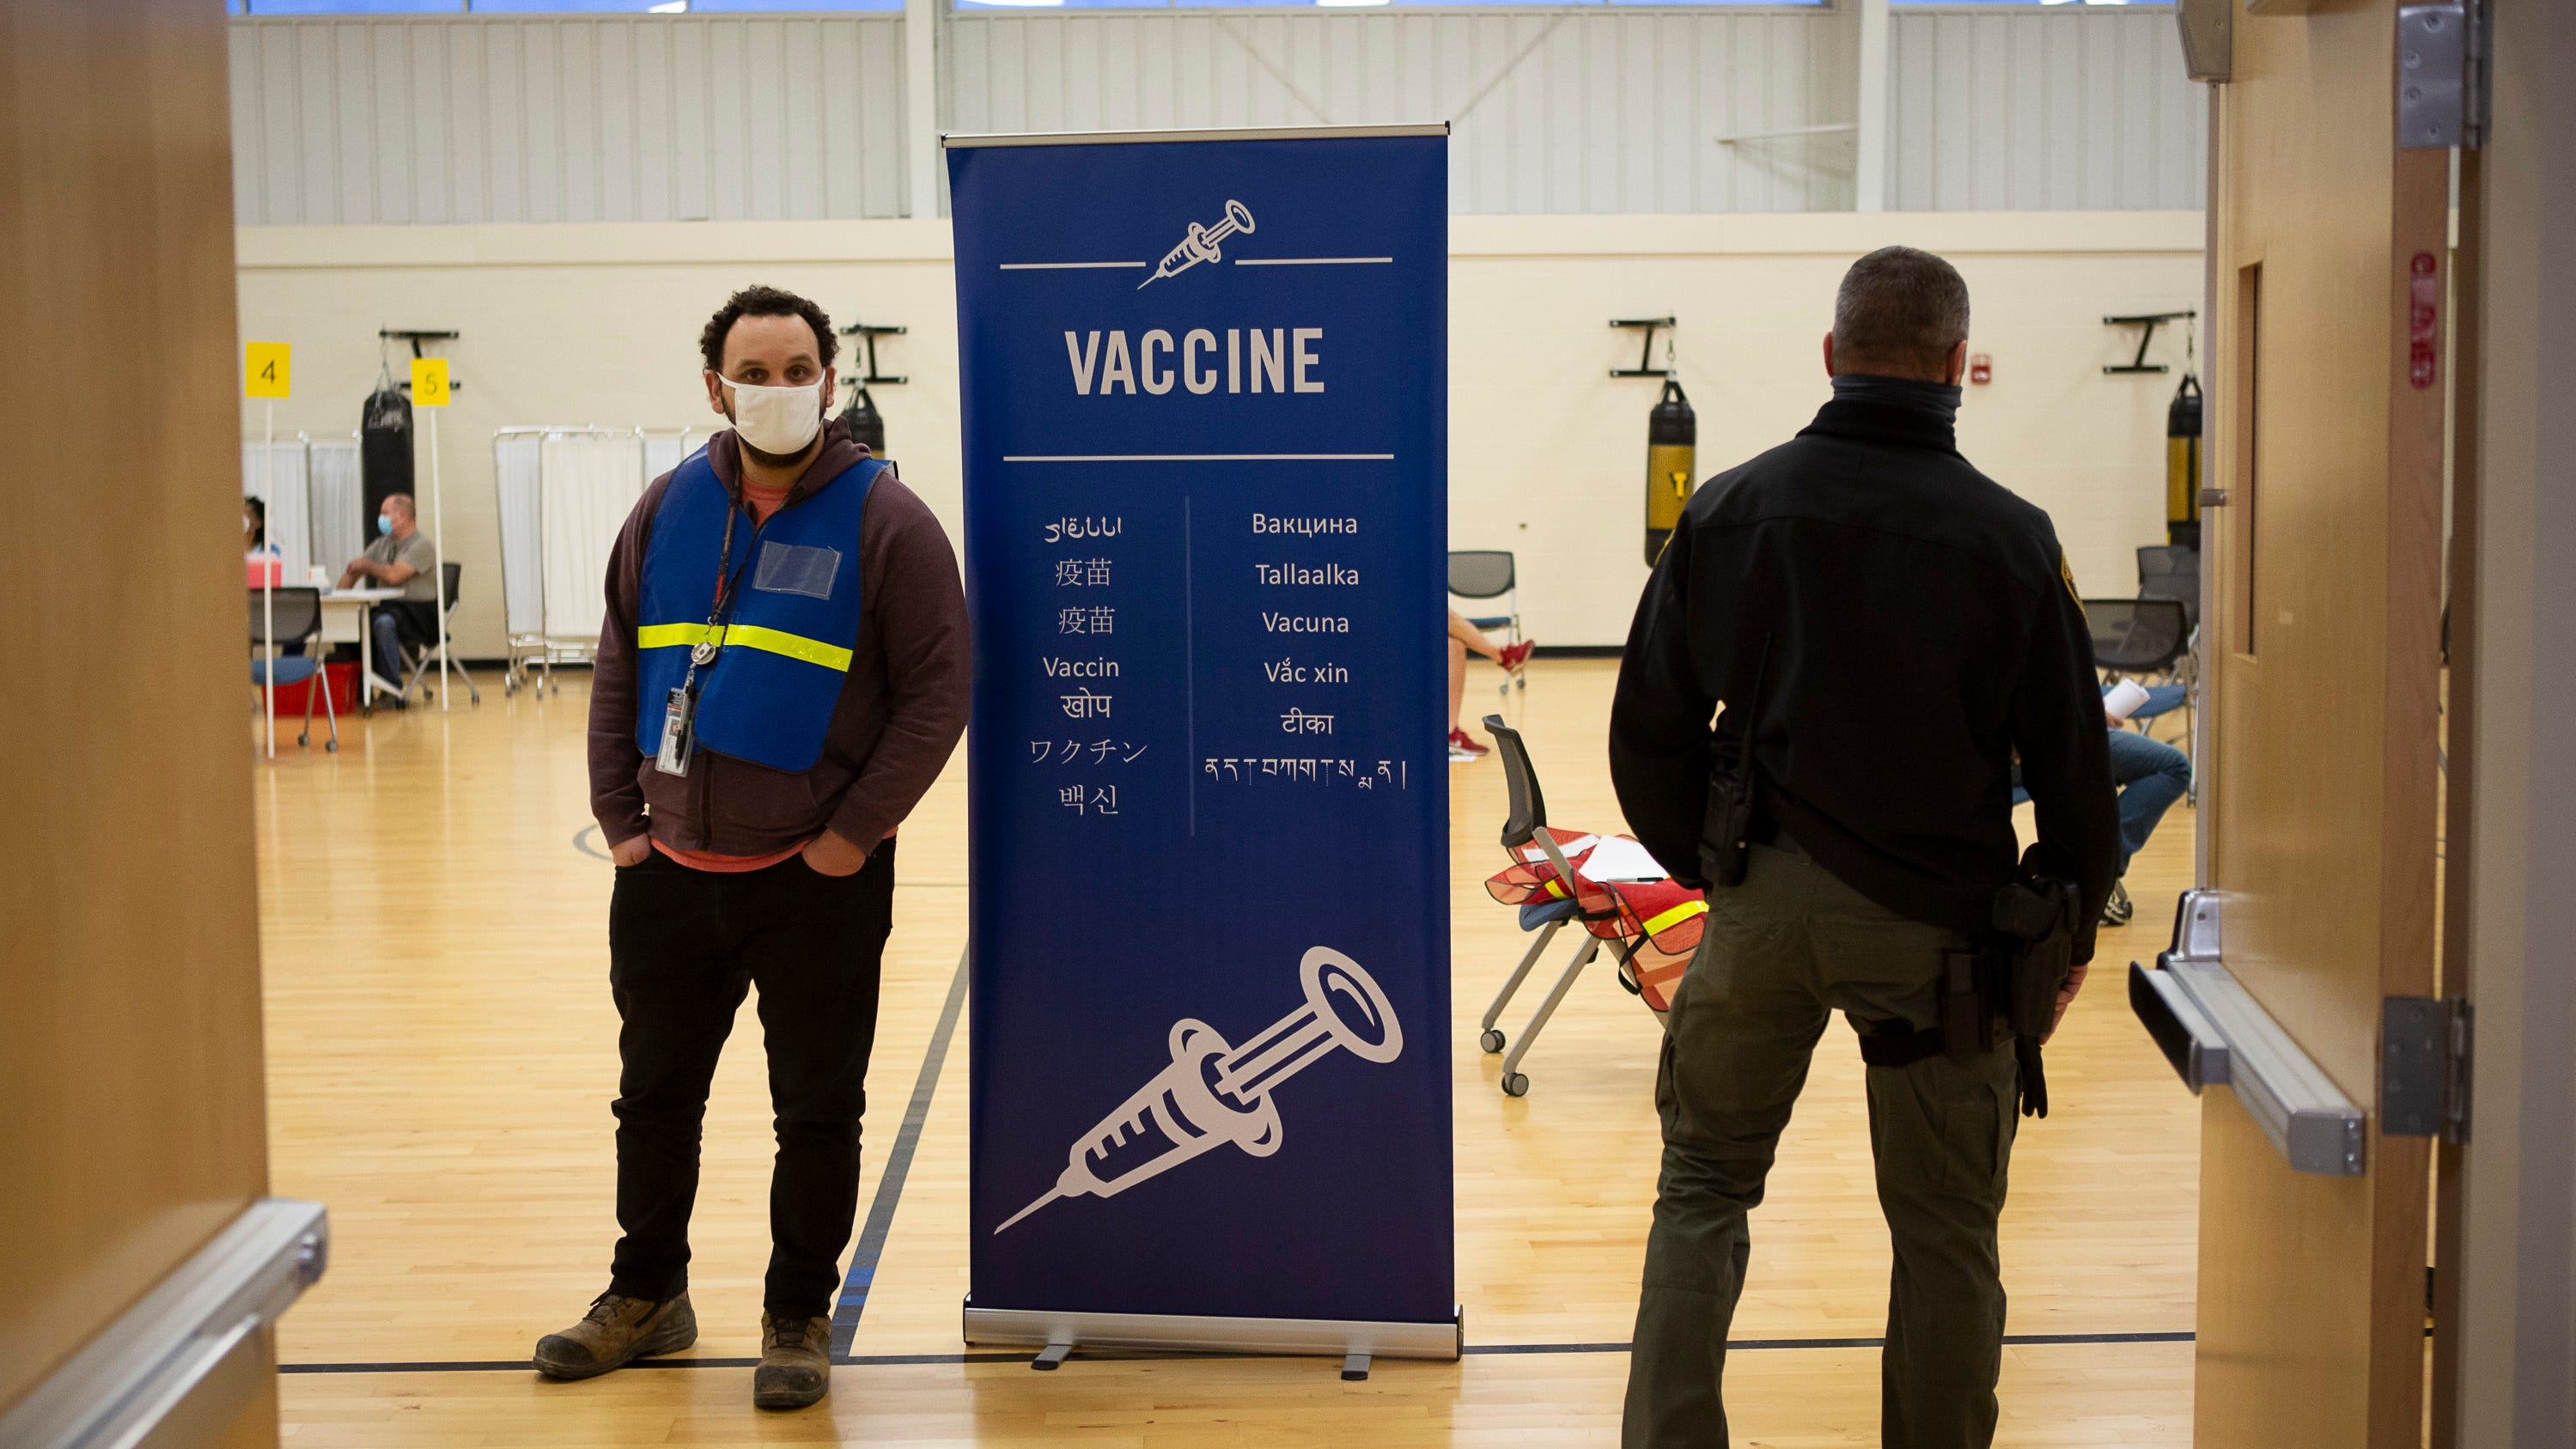 Franklin County Public Health has begun distributing COVID-19 vaccines to EMS responders in the first phase of vaccine distribution. The organization received 4300 doses of the Moderna vaccine and can administer up to 540 per day to those in the first phase of vaccine distribution.